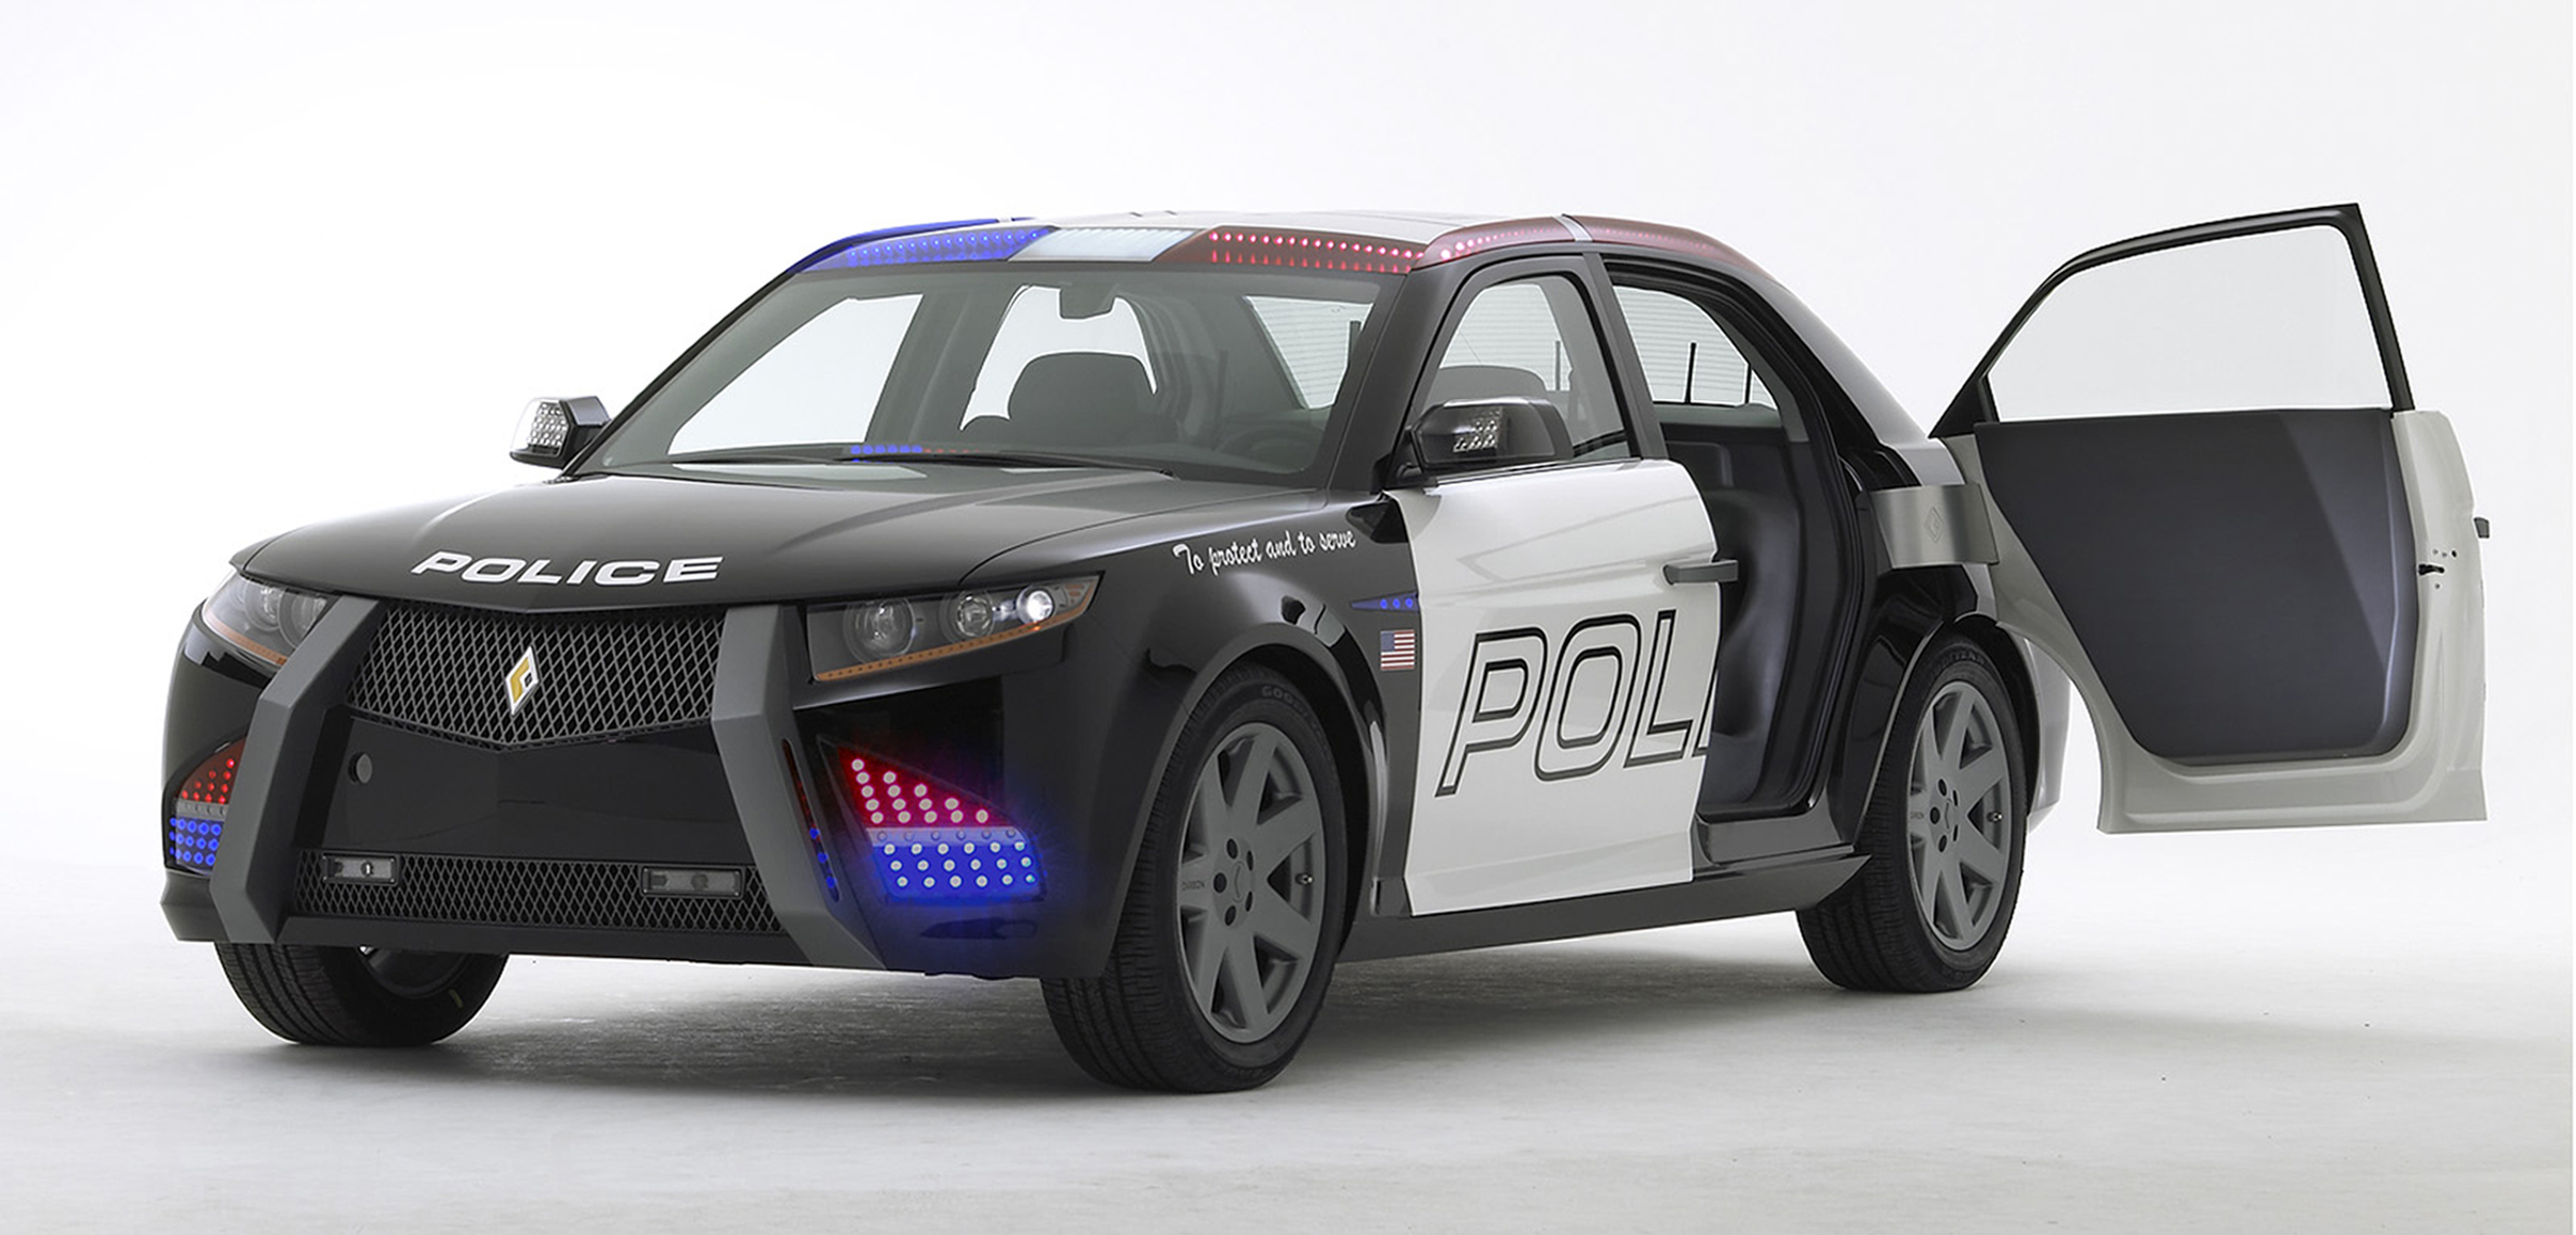 It 39 s a 187 on the carbon motors cop car dream e7 up for for Modern motors used cars